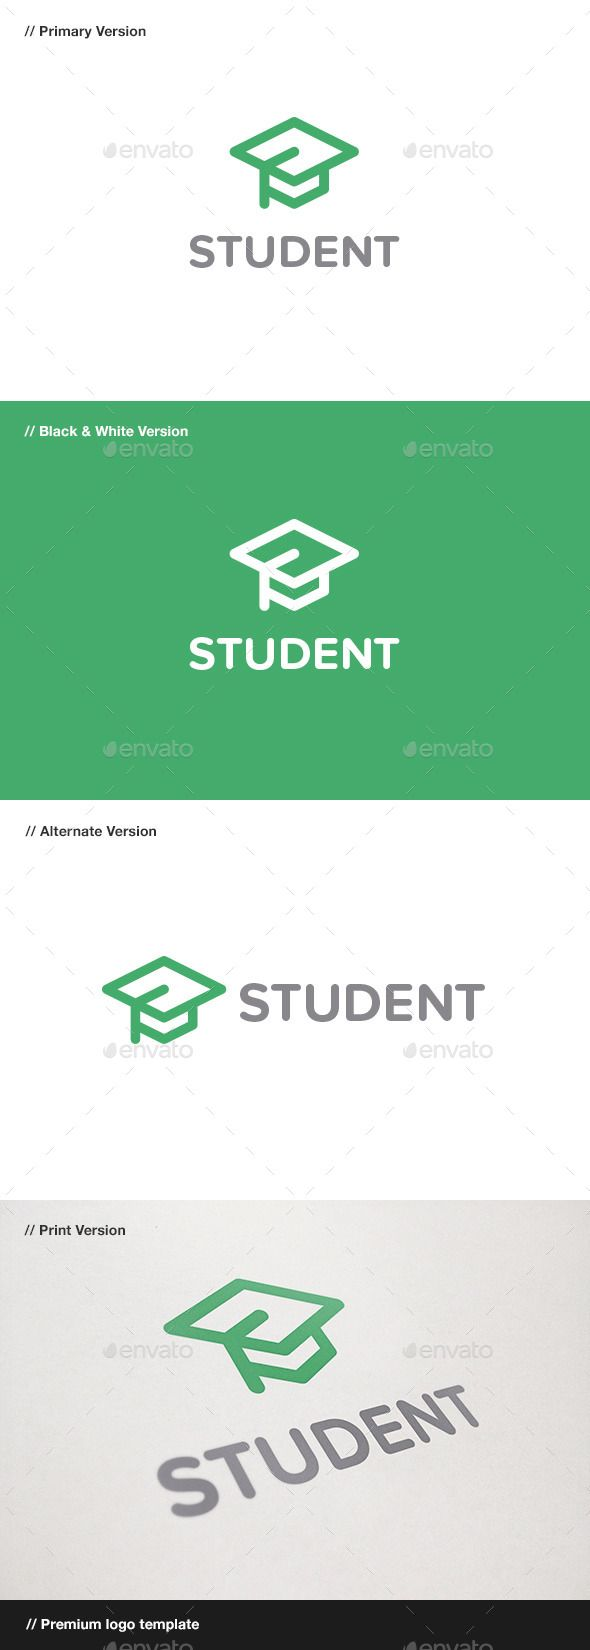 Student Logo (AI Illustrator, Resizable, CS, academy, app, application, apprentice, blog, brand, branding, cap, certified, corporate, curse, diploma, hat, high, identity, logo, logotype, professional, school, software, student, study, university, web, website)